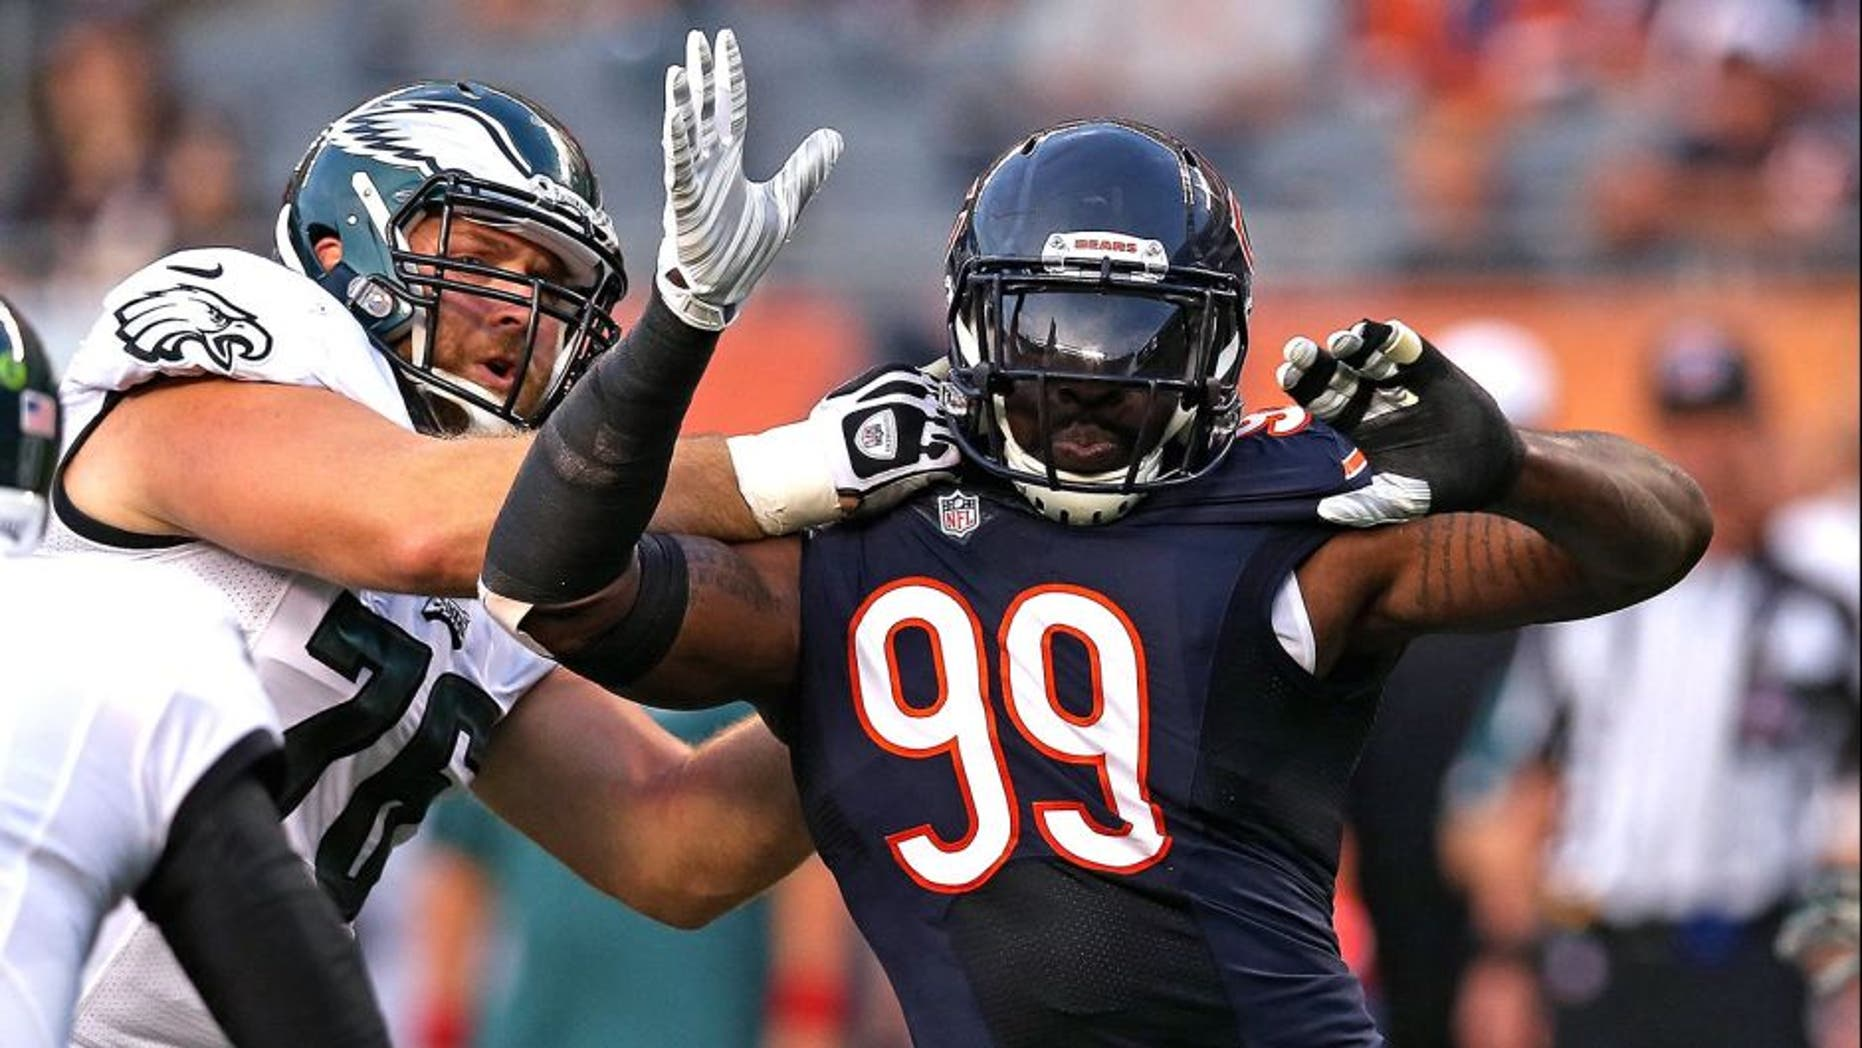 CHICAGO, IL - AUGUST 08: Lamarr Houston #99 of the Chicago Bears rushes against Allen Barbre #76 of the Philadelphia Eagles during a preseason game at Soldier Field on August 8, 2014 in Chicago, Illinois. (Photo by Jonathan Daniel/Getty Images) *** Local Caption *** Lamarr Houston; Allen Barbre